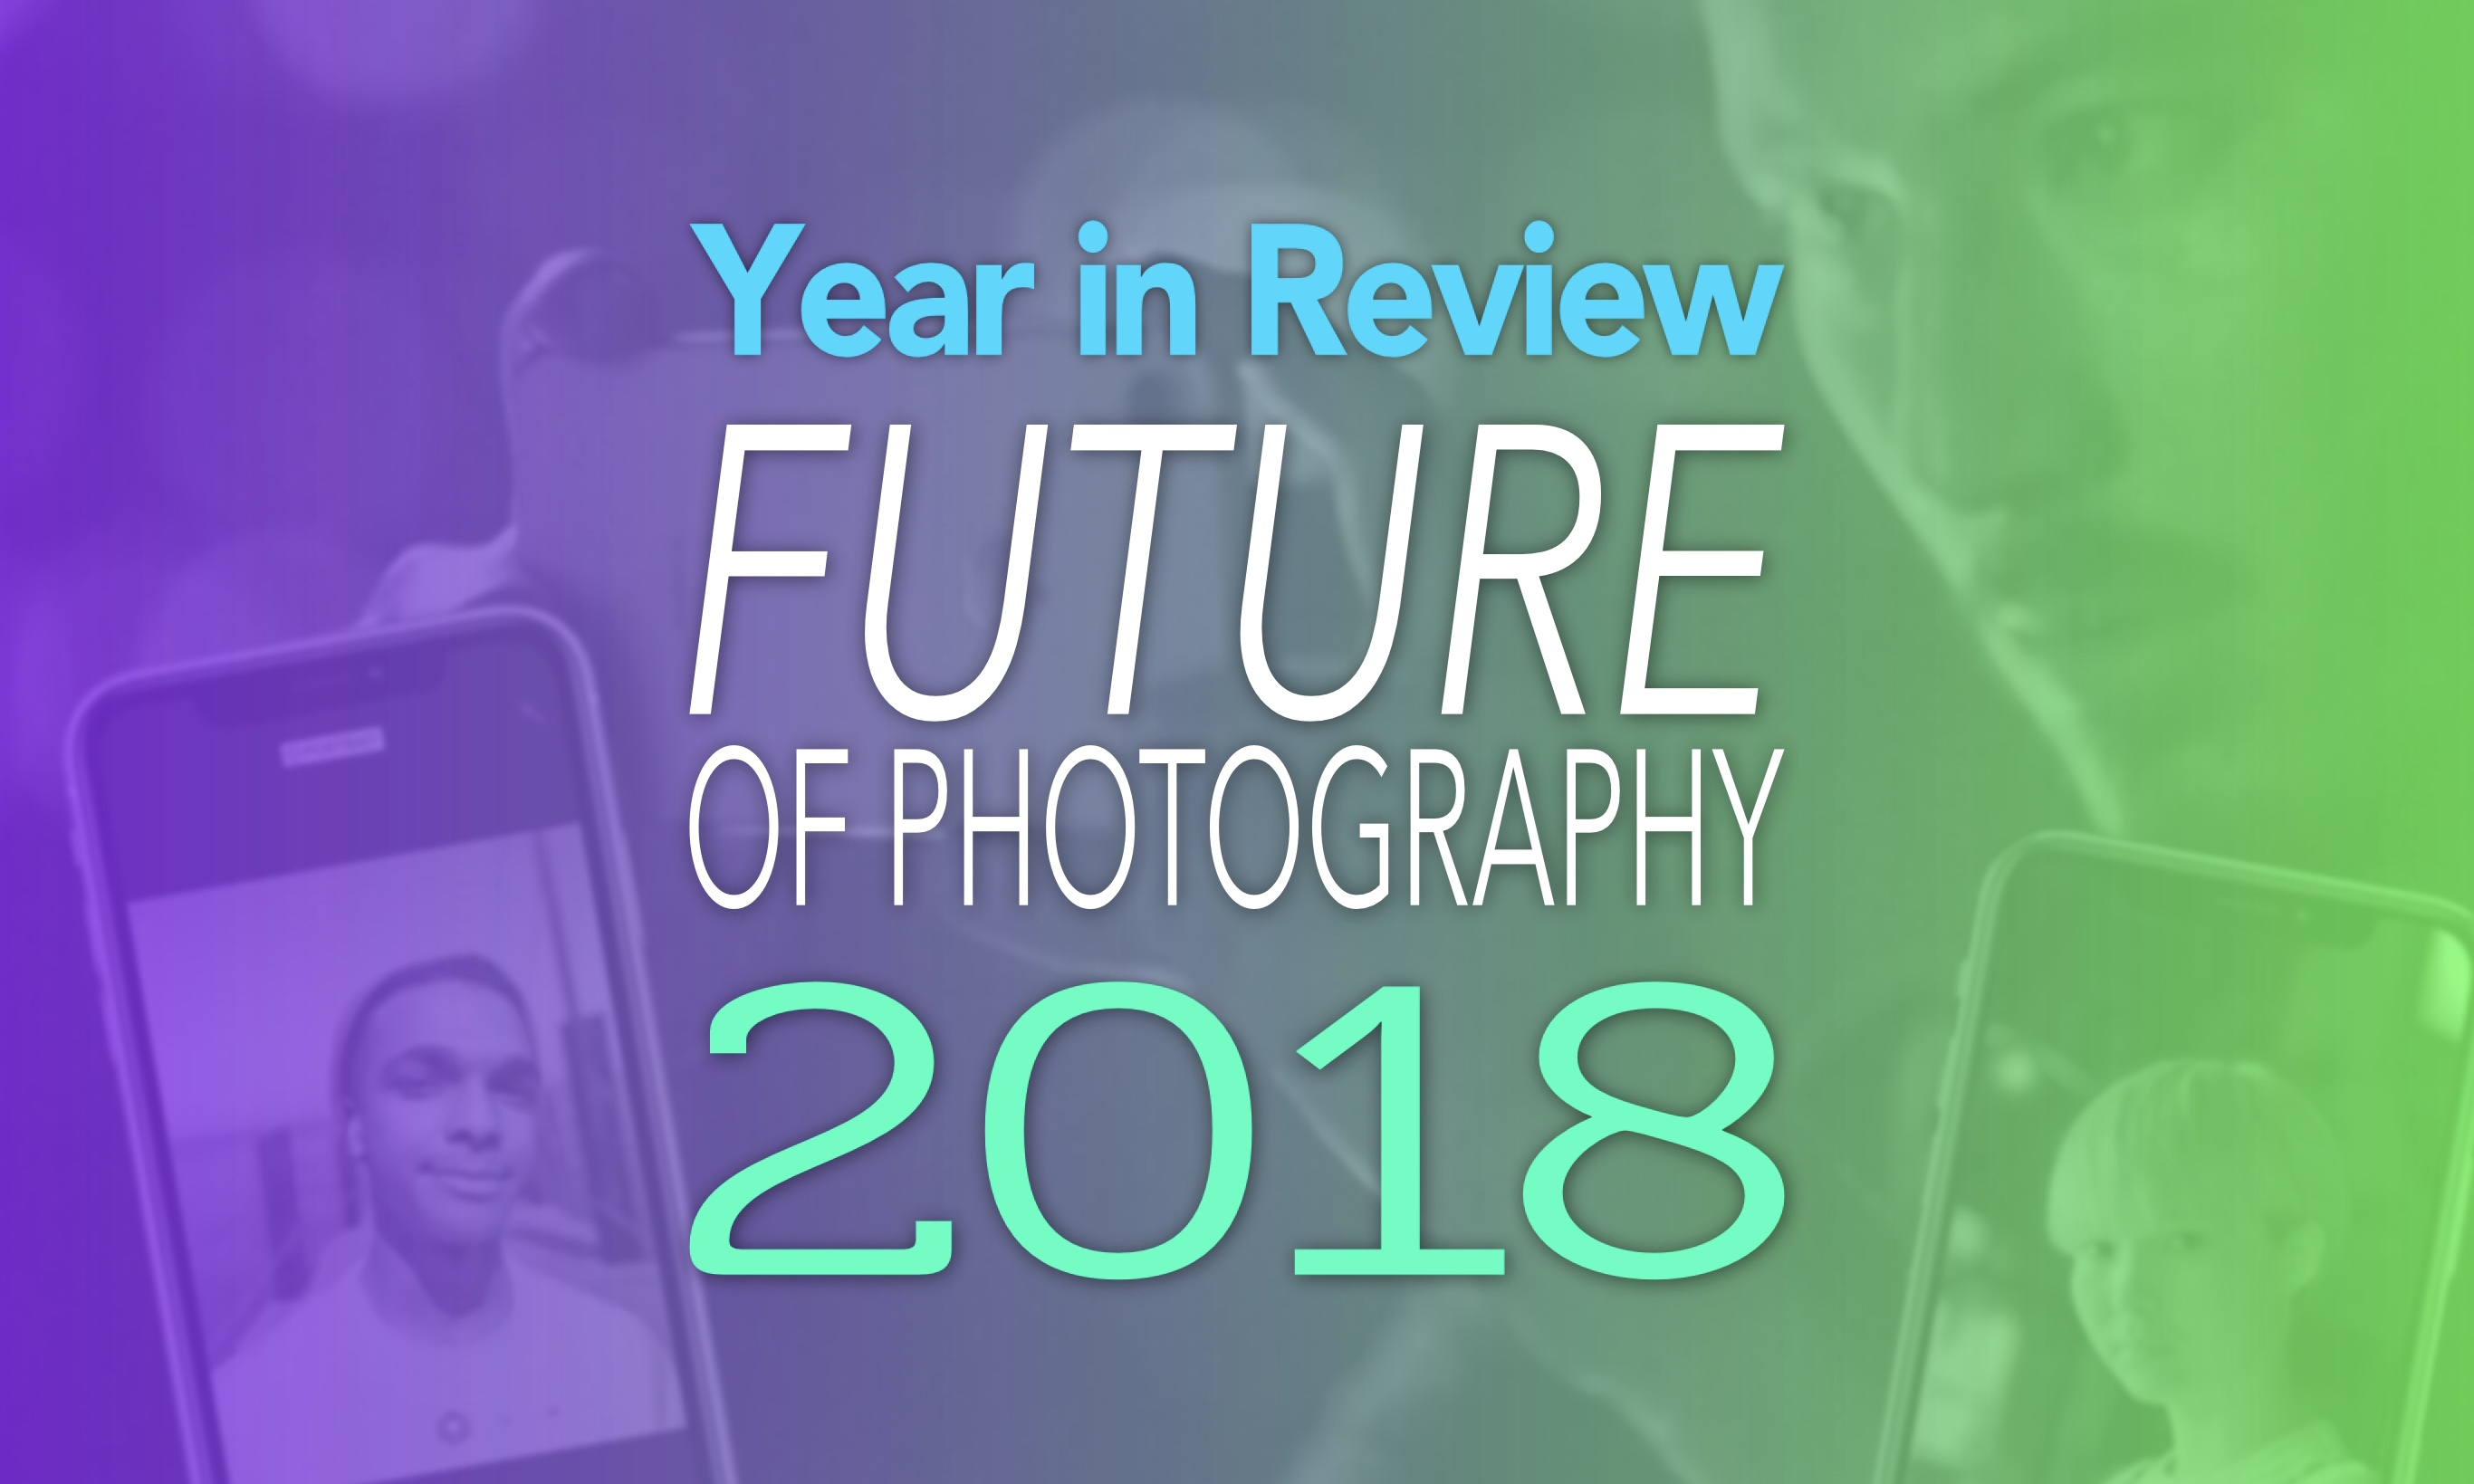 Year in Review Future of Photography 2018